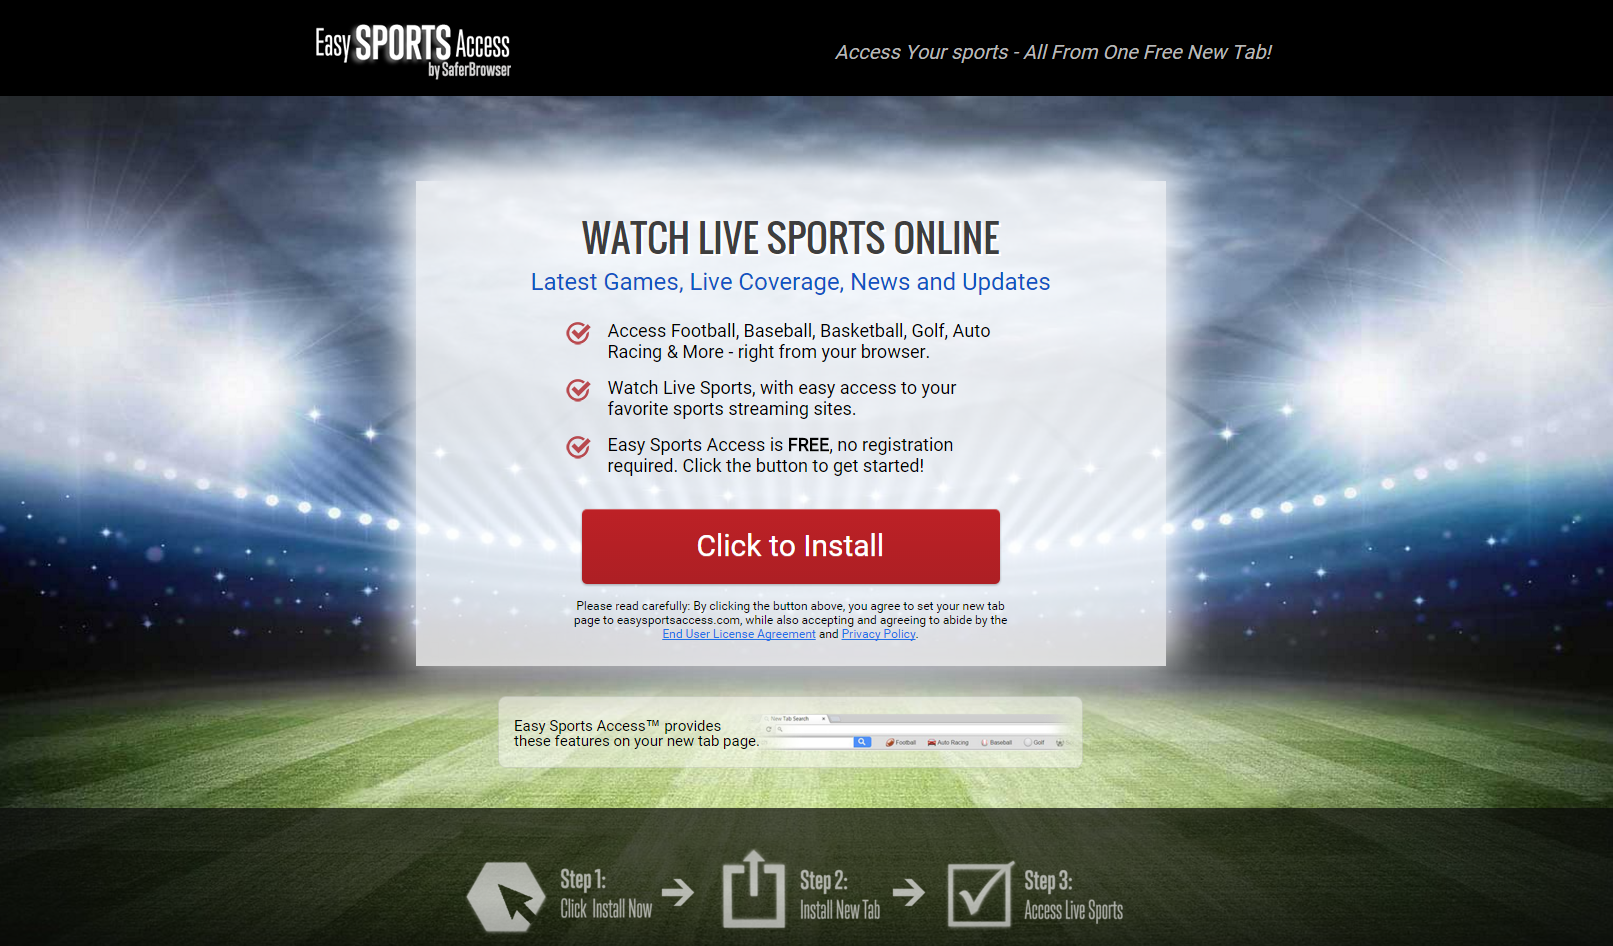 ads by EasySportsAccess